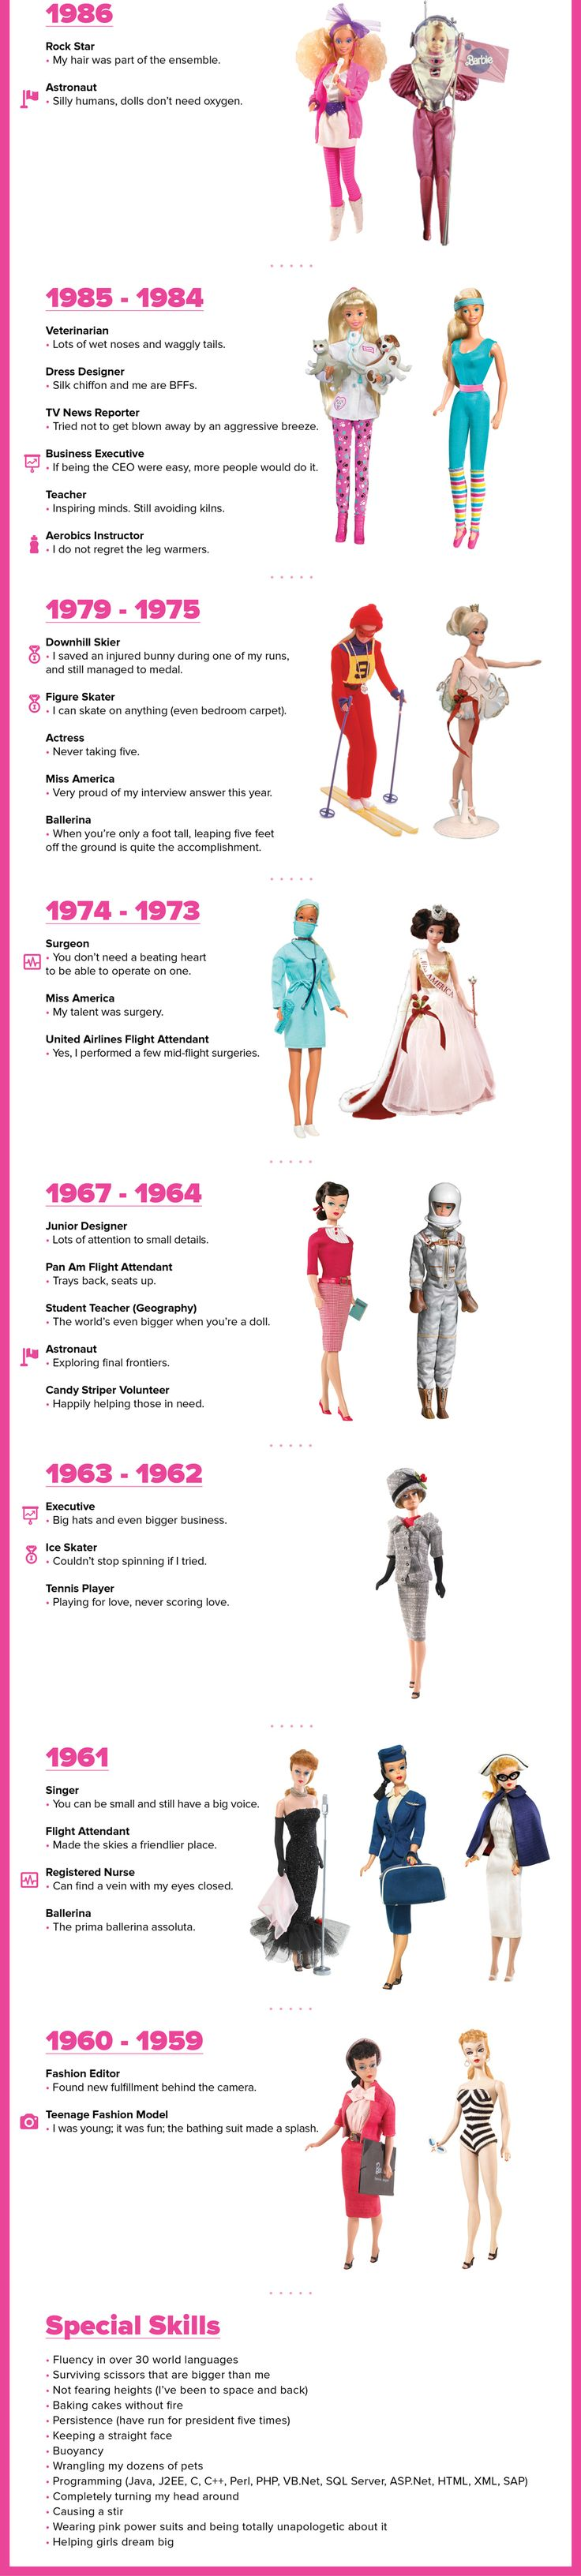 """What A Barbie Resume Looks Like After 55 Years. My favorite: 1974-1973 """"Surgeon - You don't need a beating heart to be able to operate on one. Miss America - My talent was surgery. Flight Attendant - Yes, I performed a few mid-flight surgeries."""""""